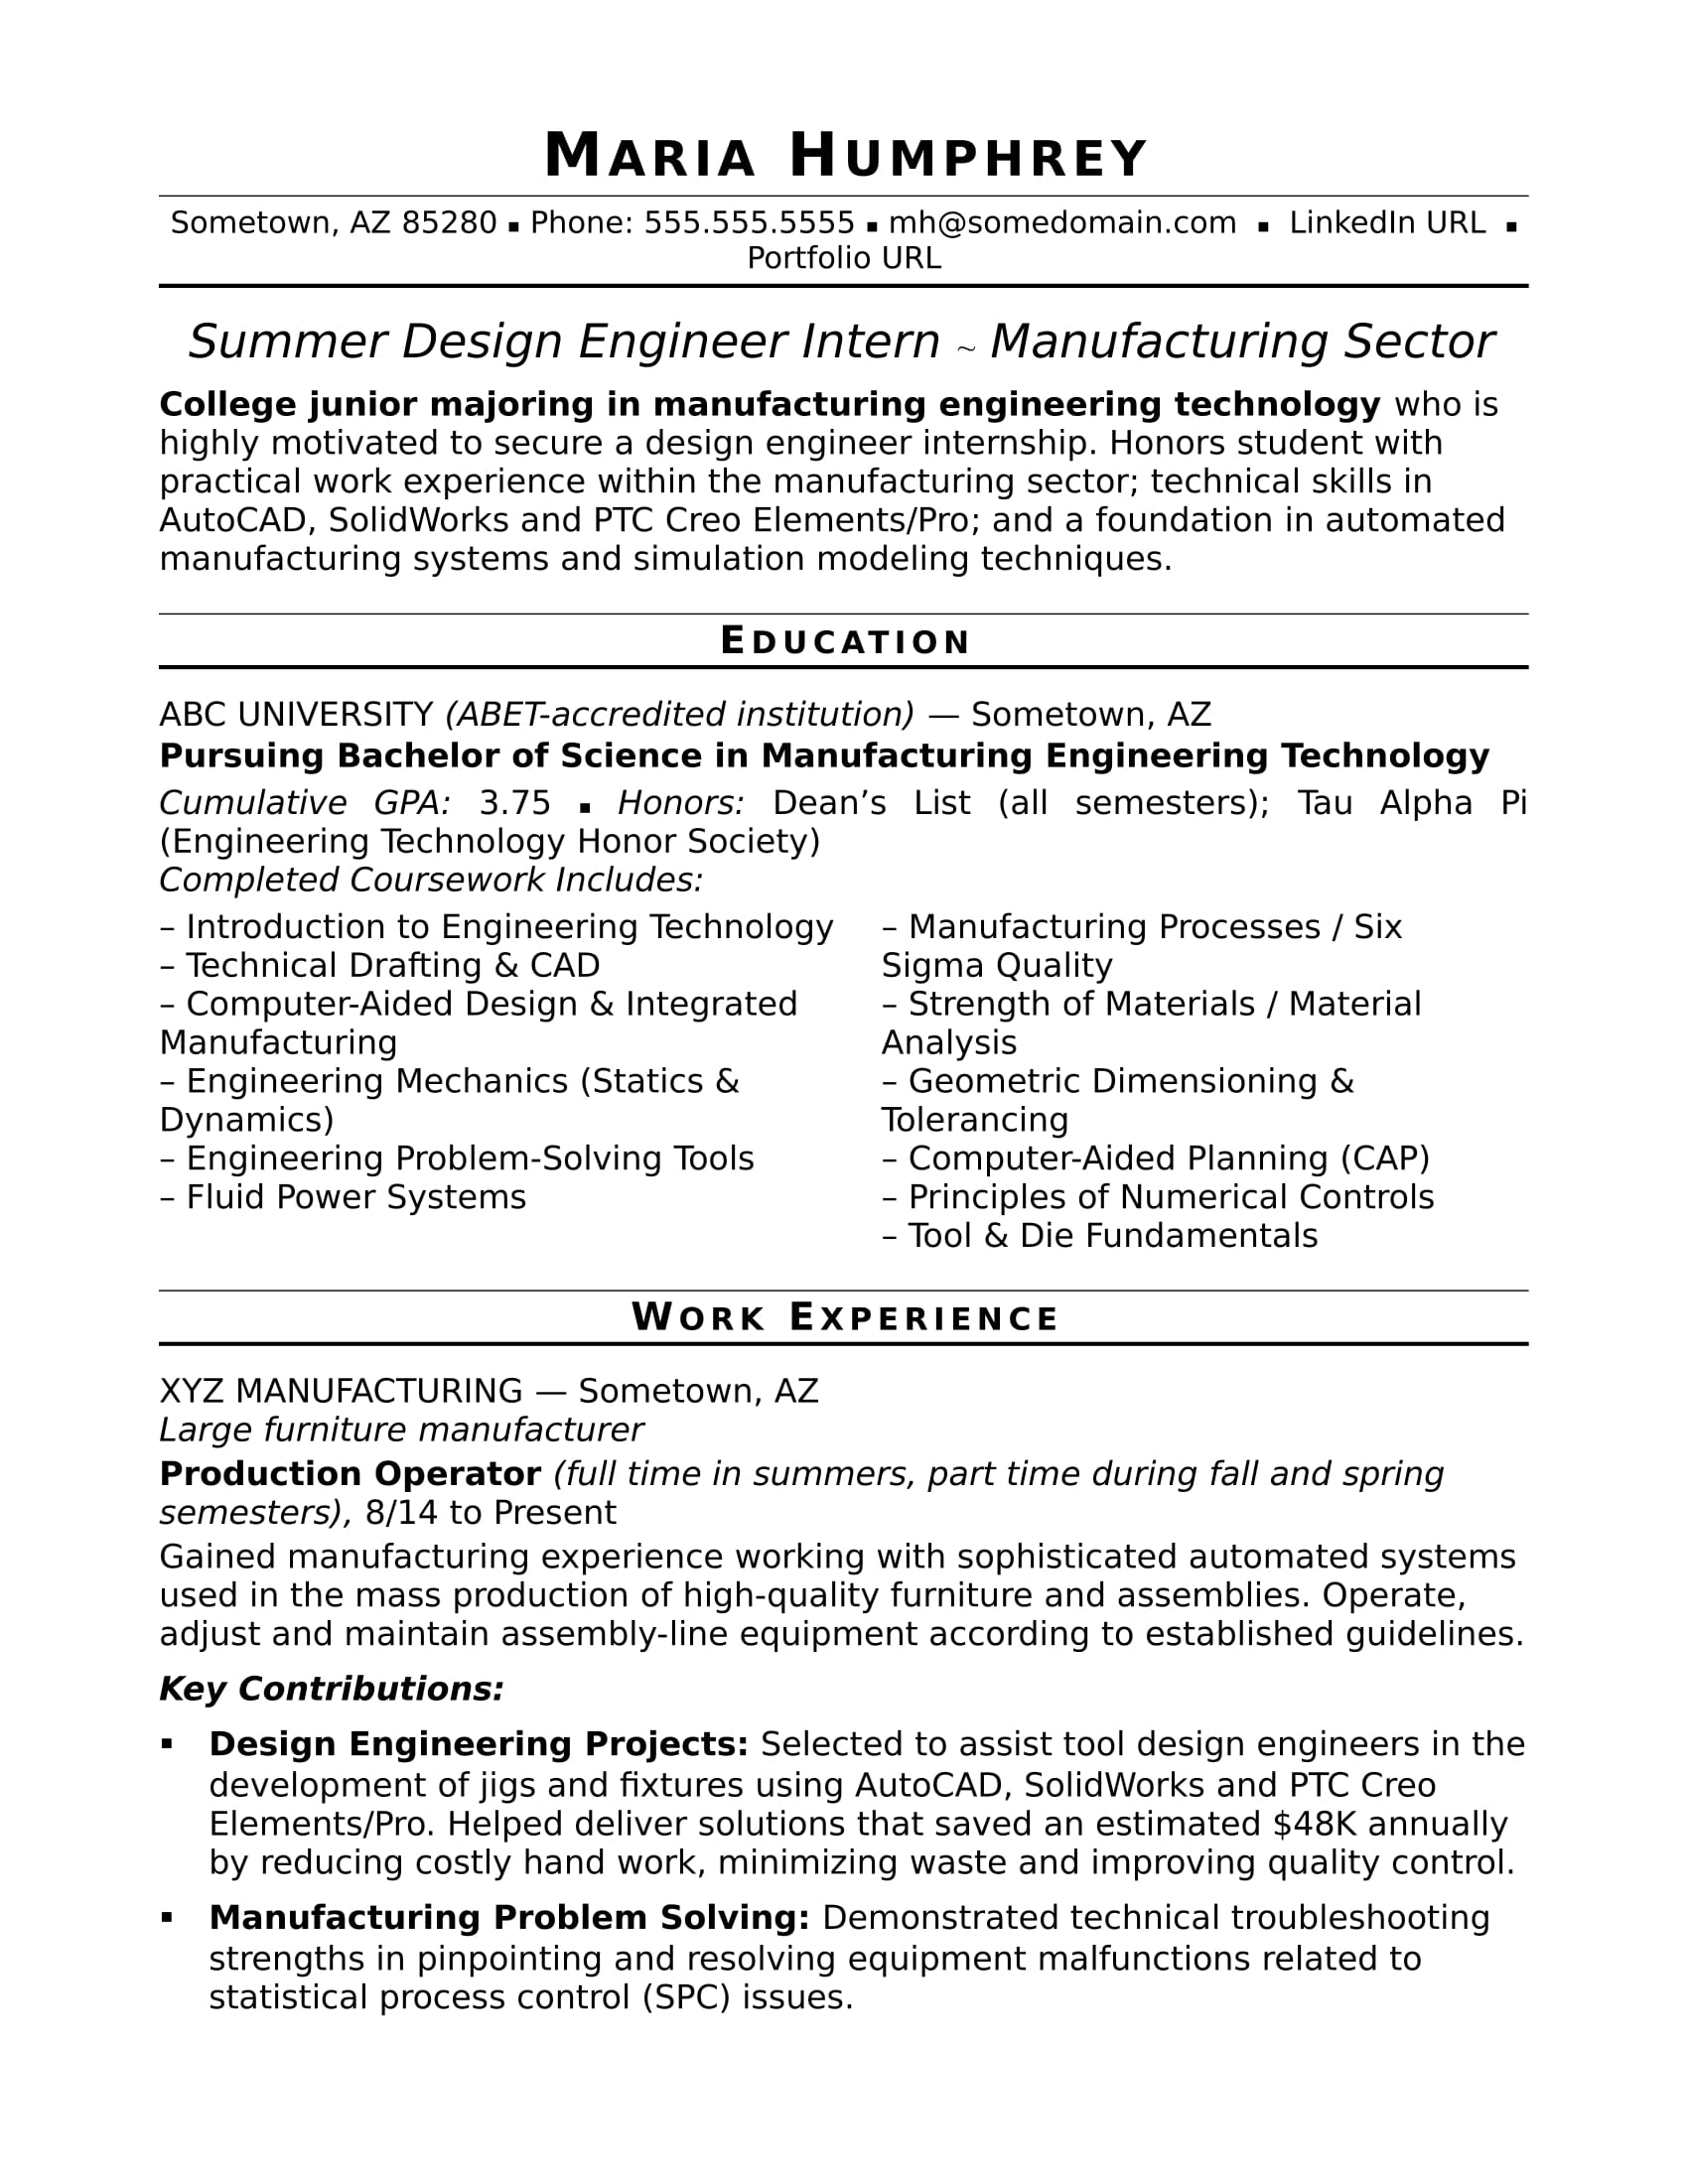 sample resume for an entry level design engineer - Mechanical Design Engineer Resume